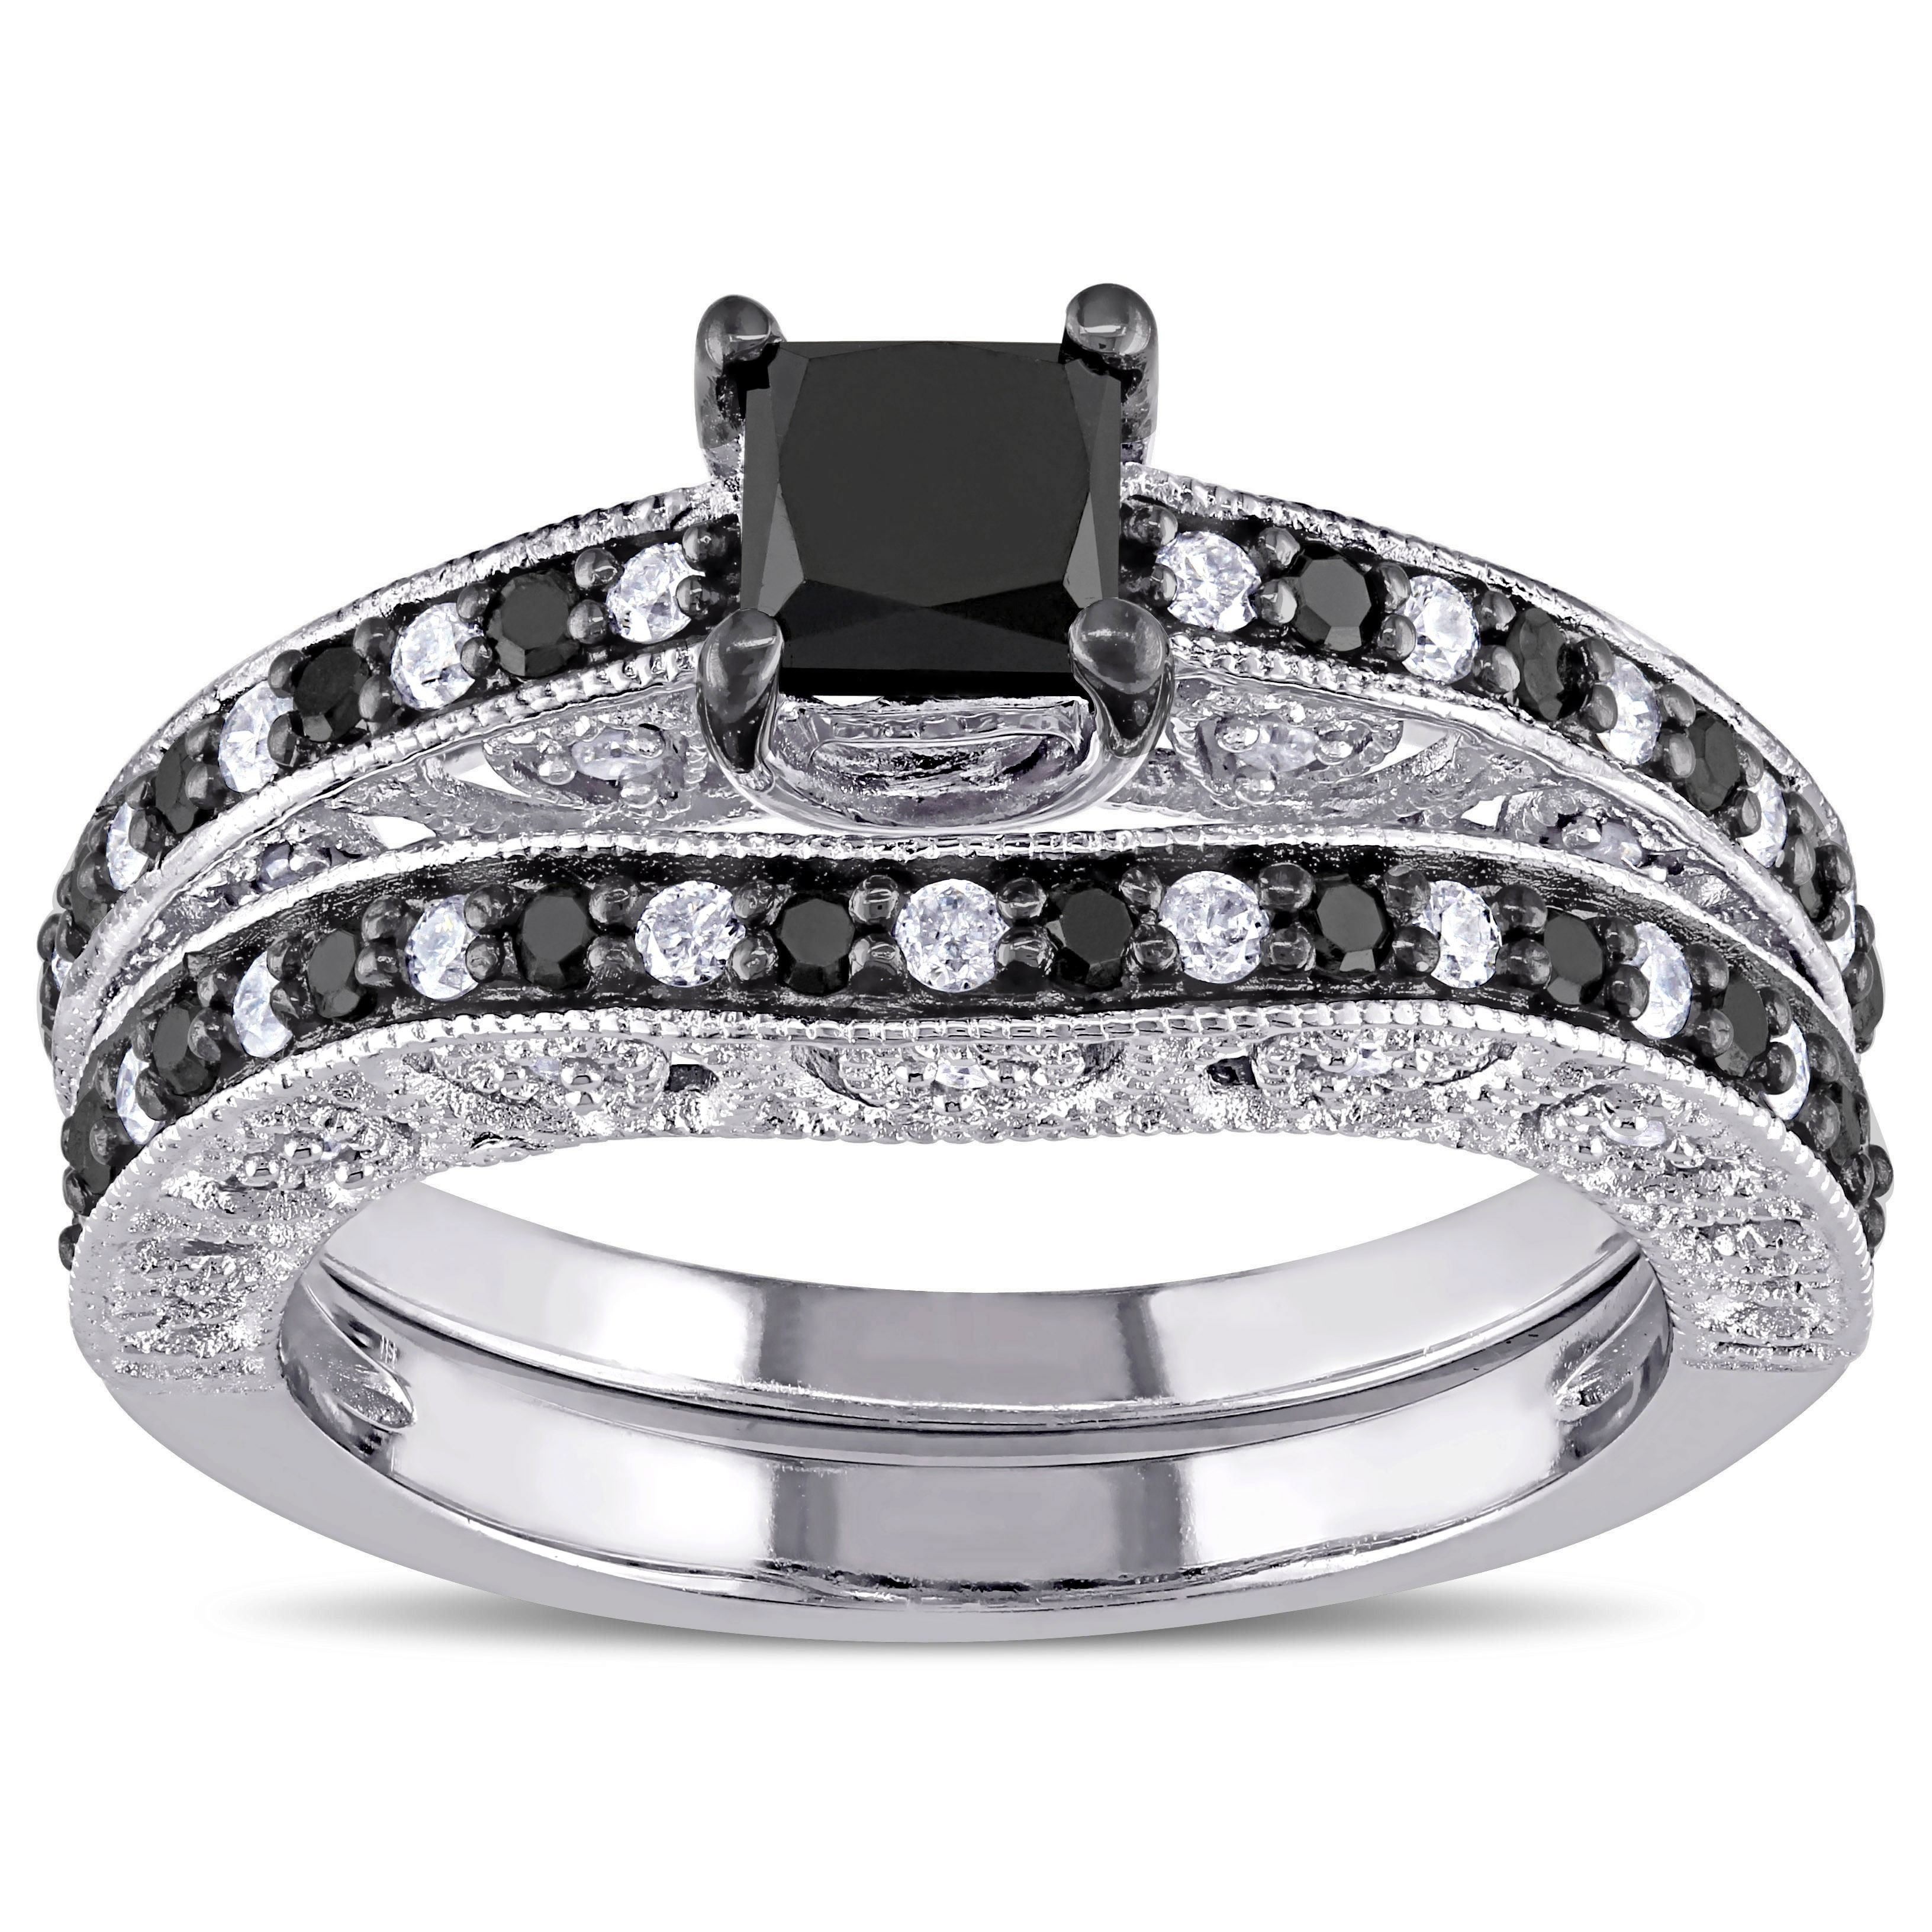 Miadora Sterling Silver 1 1/4ct TDW Black and White